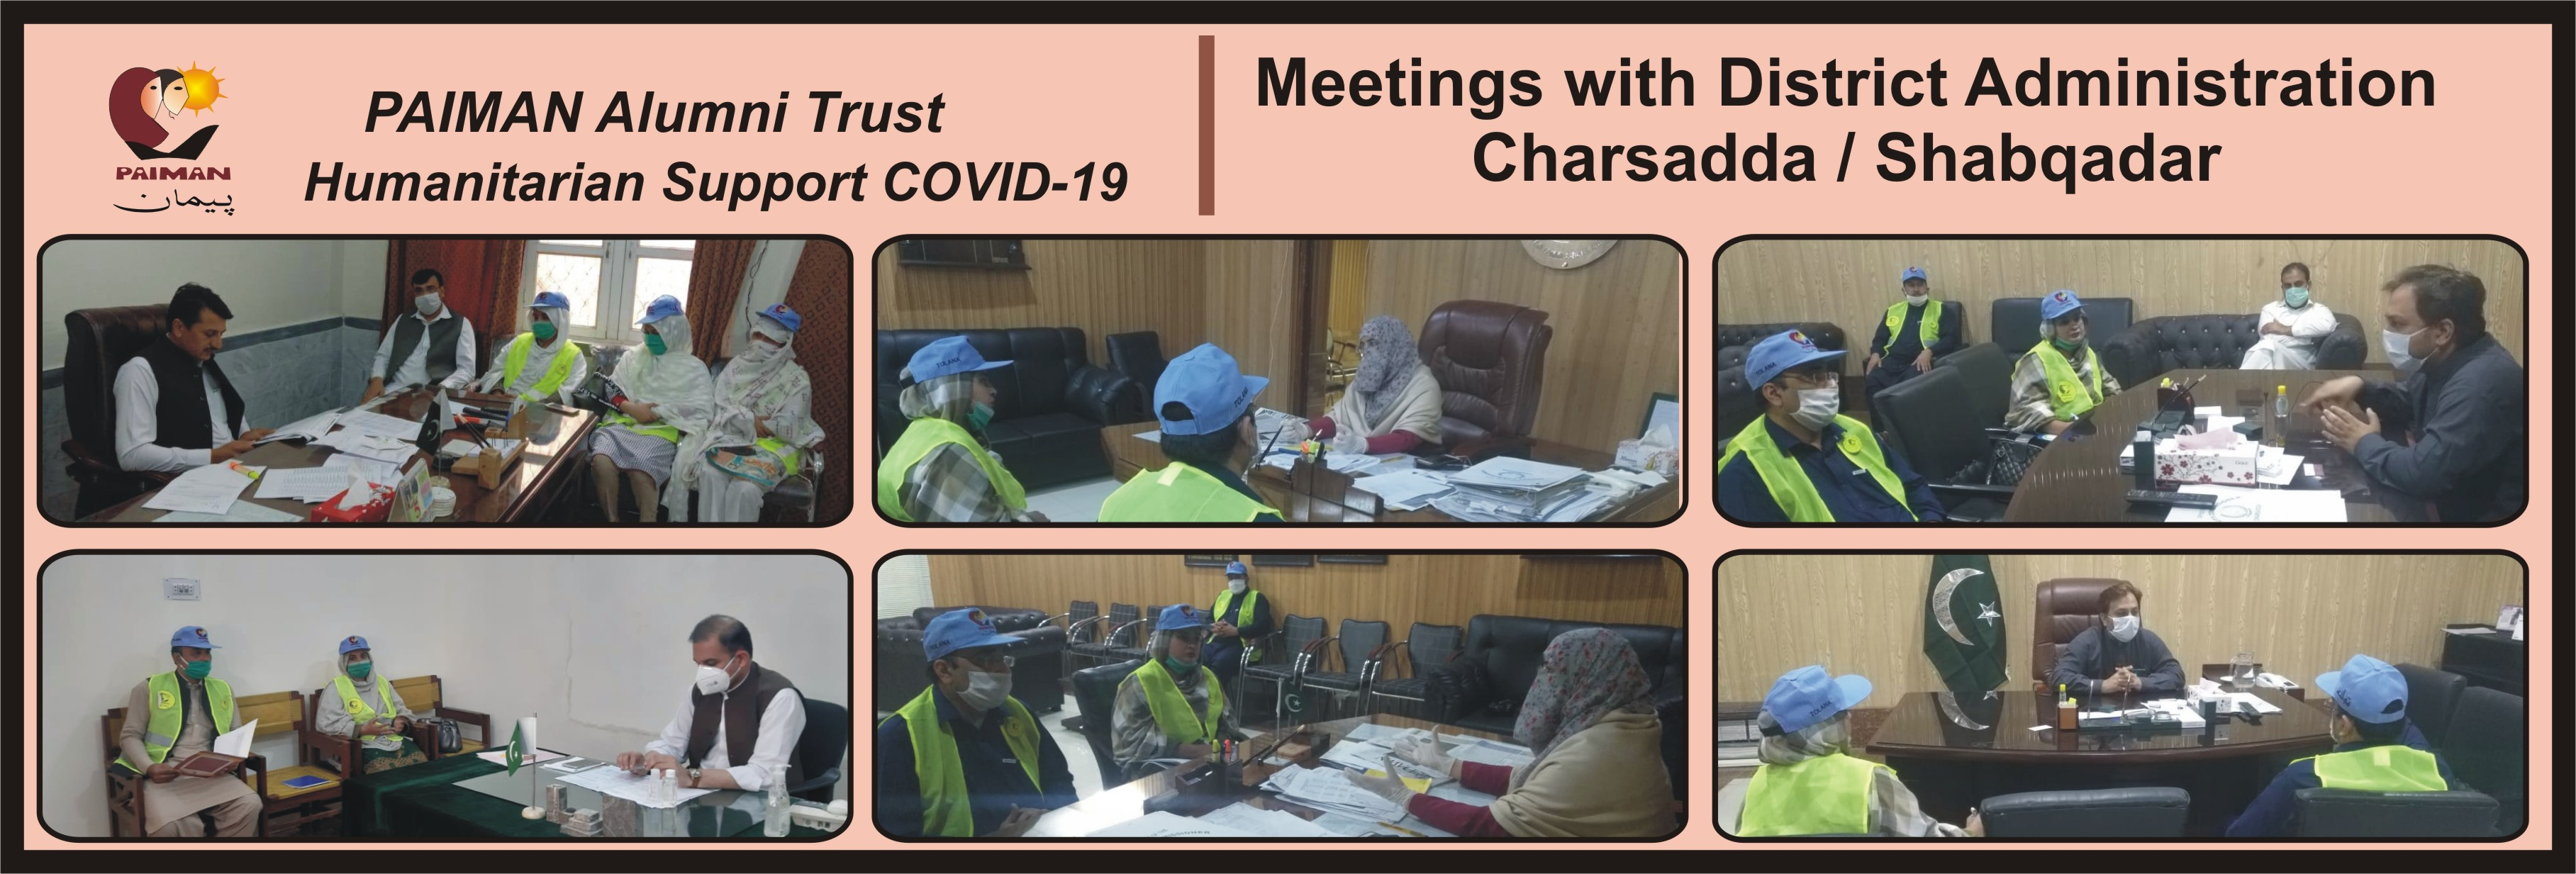 Meeting-with-AC-DC-Charsadda-edited-2